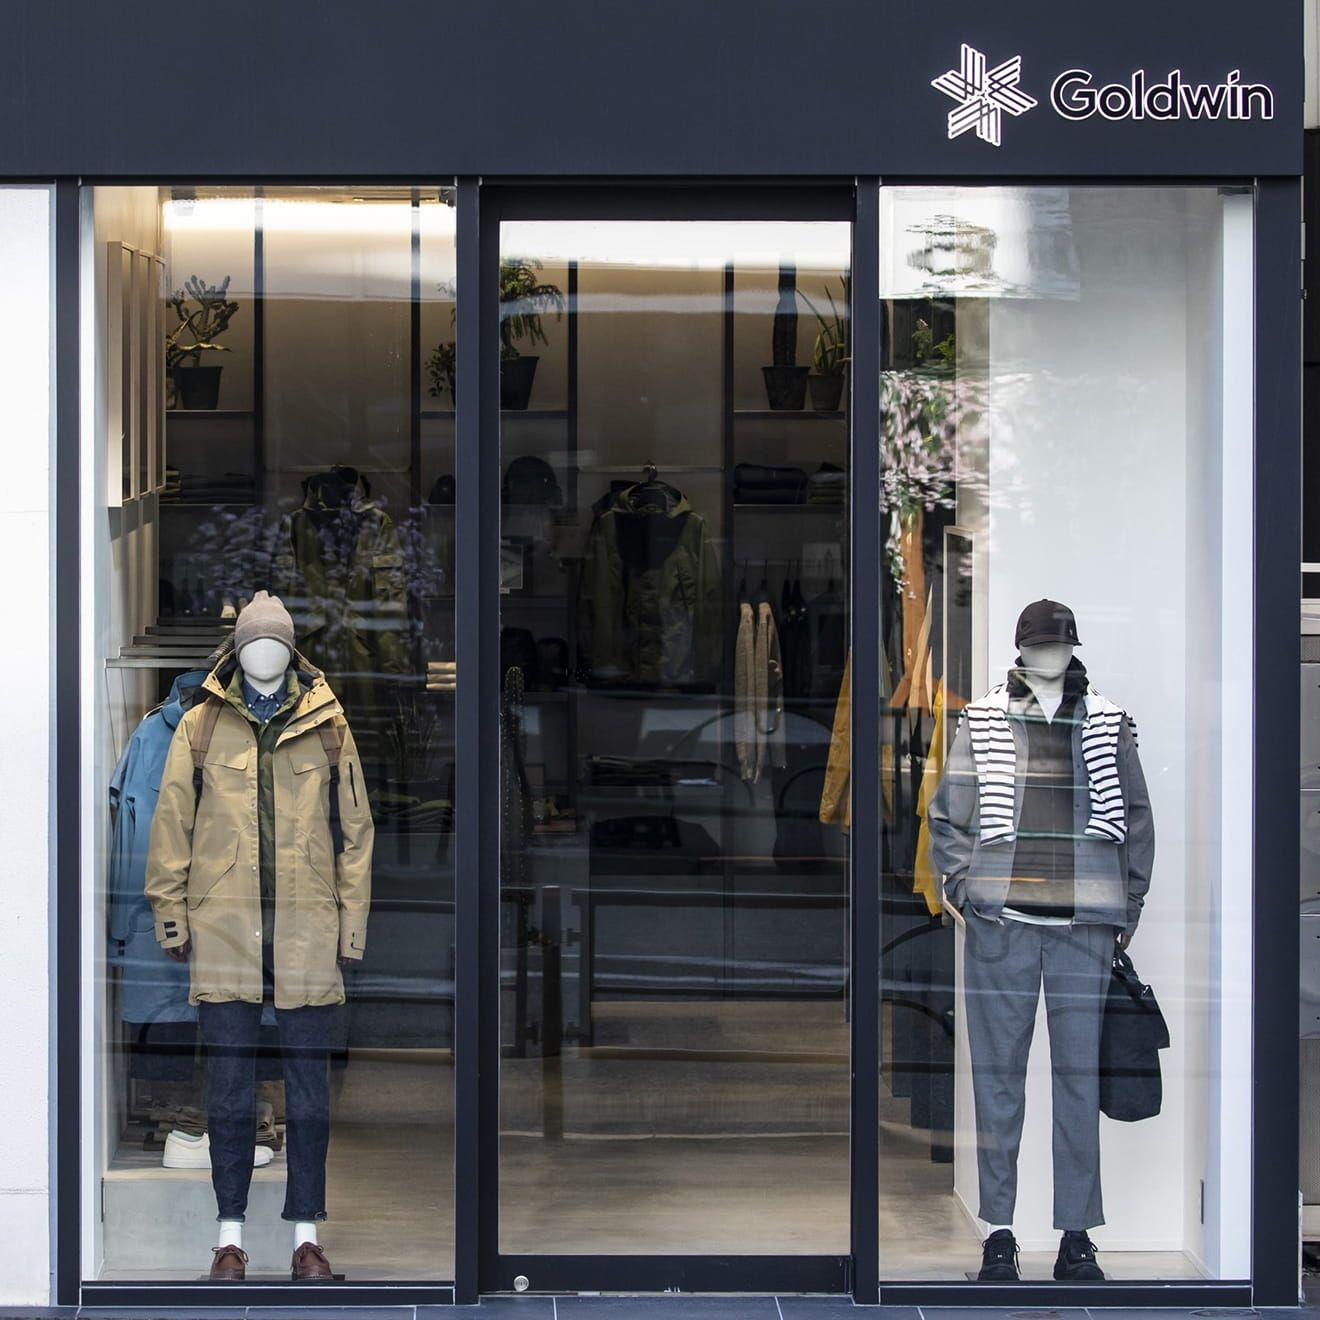 Goldwin Harajuku<br>2.29(sat) open